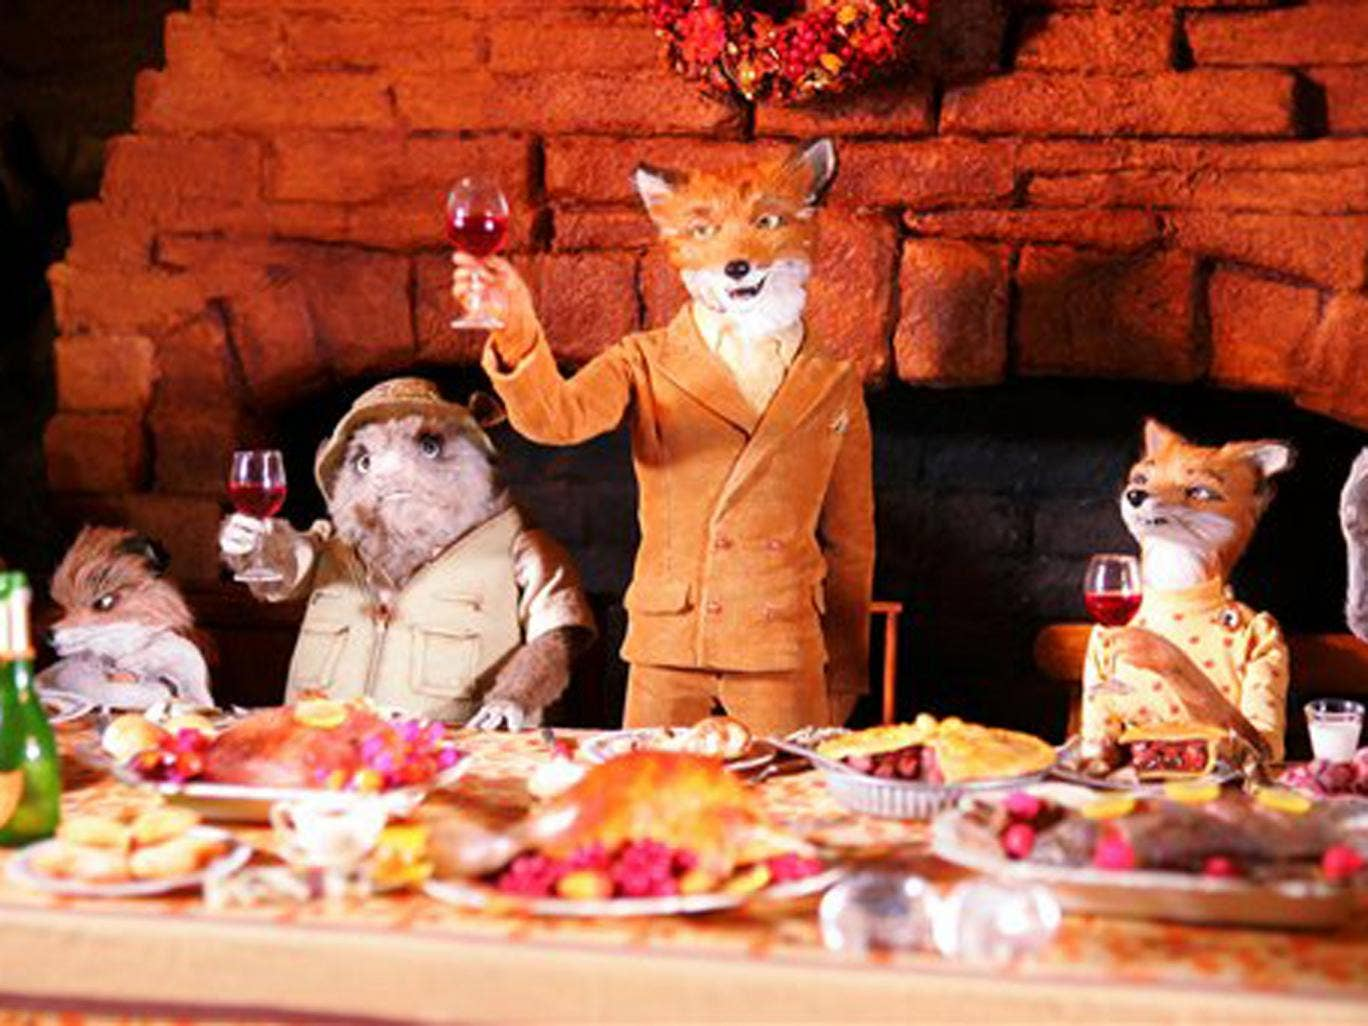 Fantastic Mr Fox (PG), 6.10-7.55pm, More4  Wes Anderson's retro animation works well and is a refreshing change from the usual slick appearance of kids' animations. Roald Dahl's story is amusingly carried by George Clooney as Mr Fox with a host of support